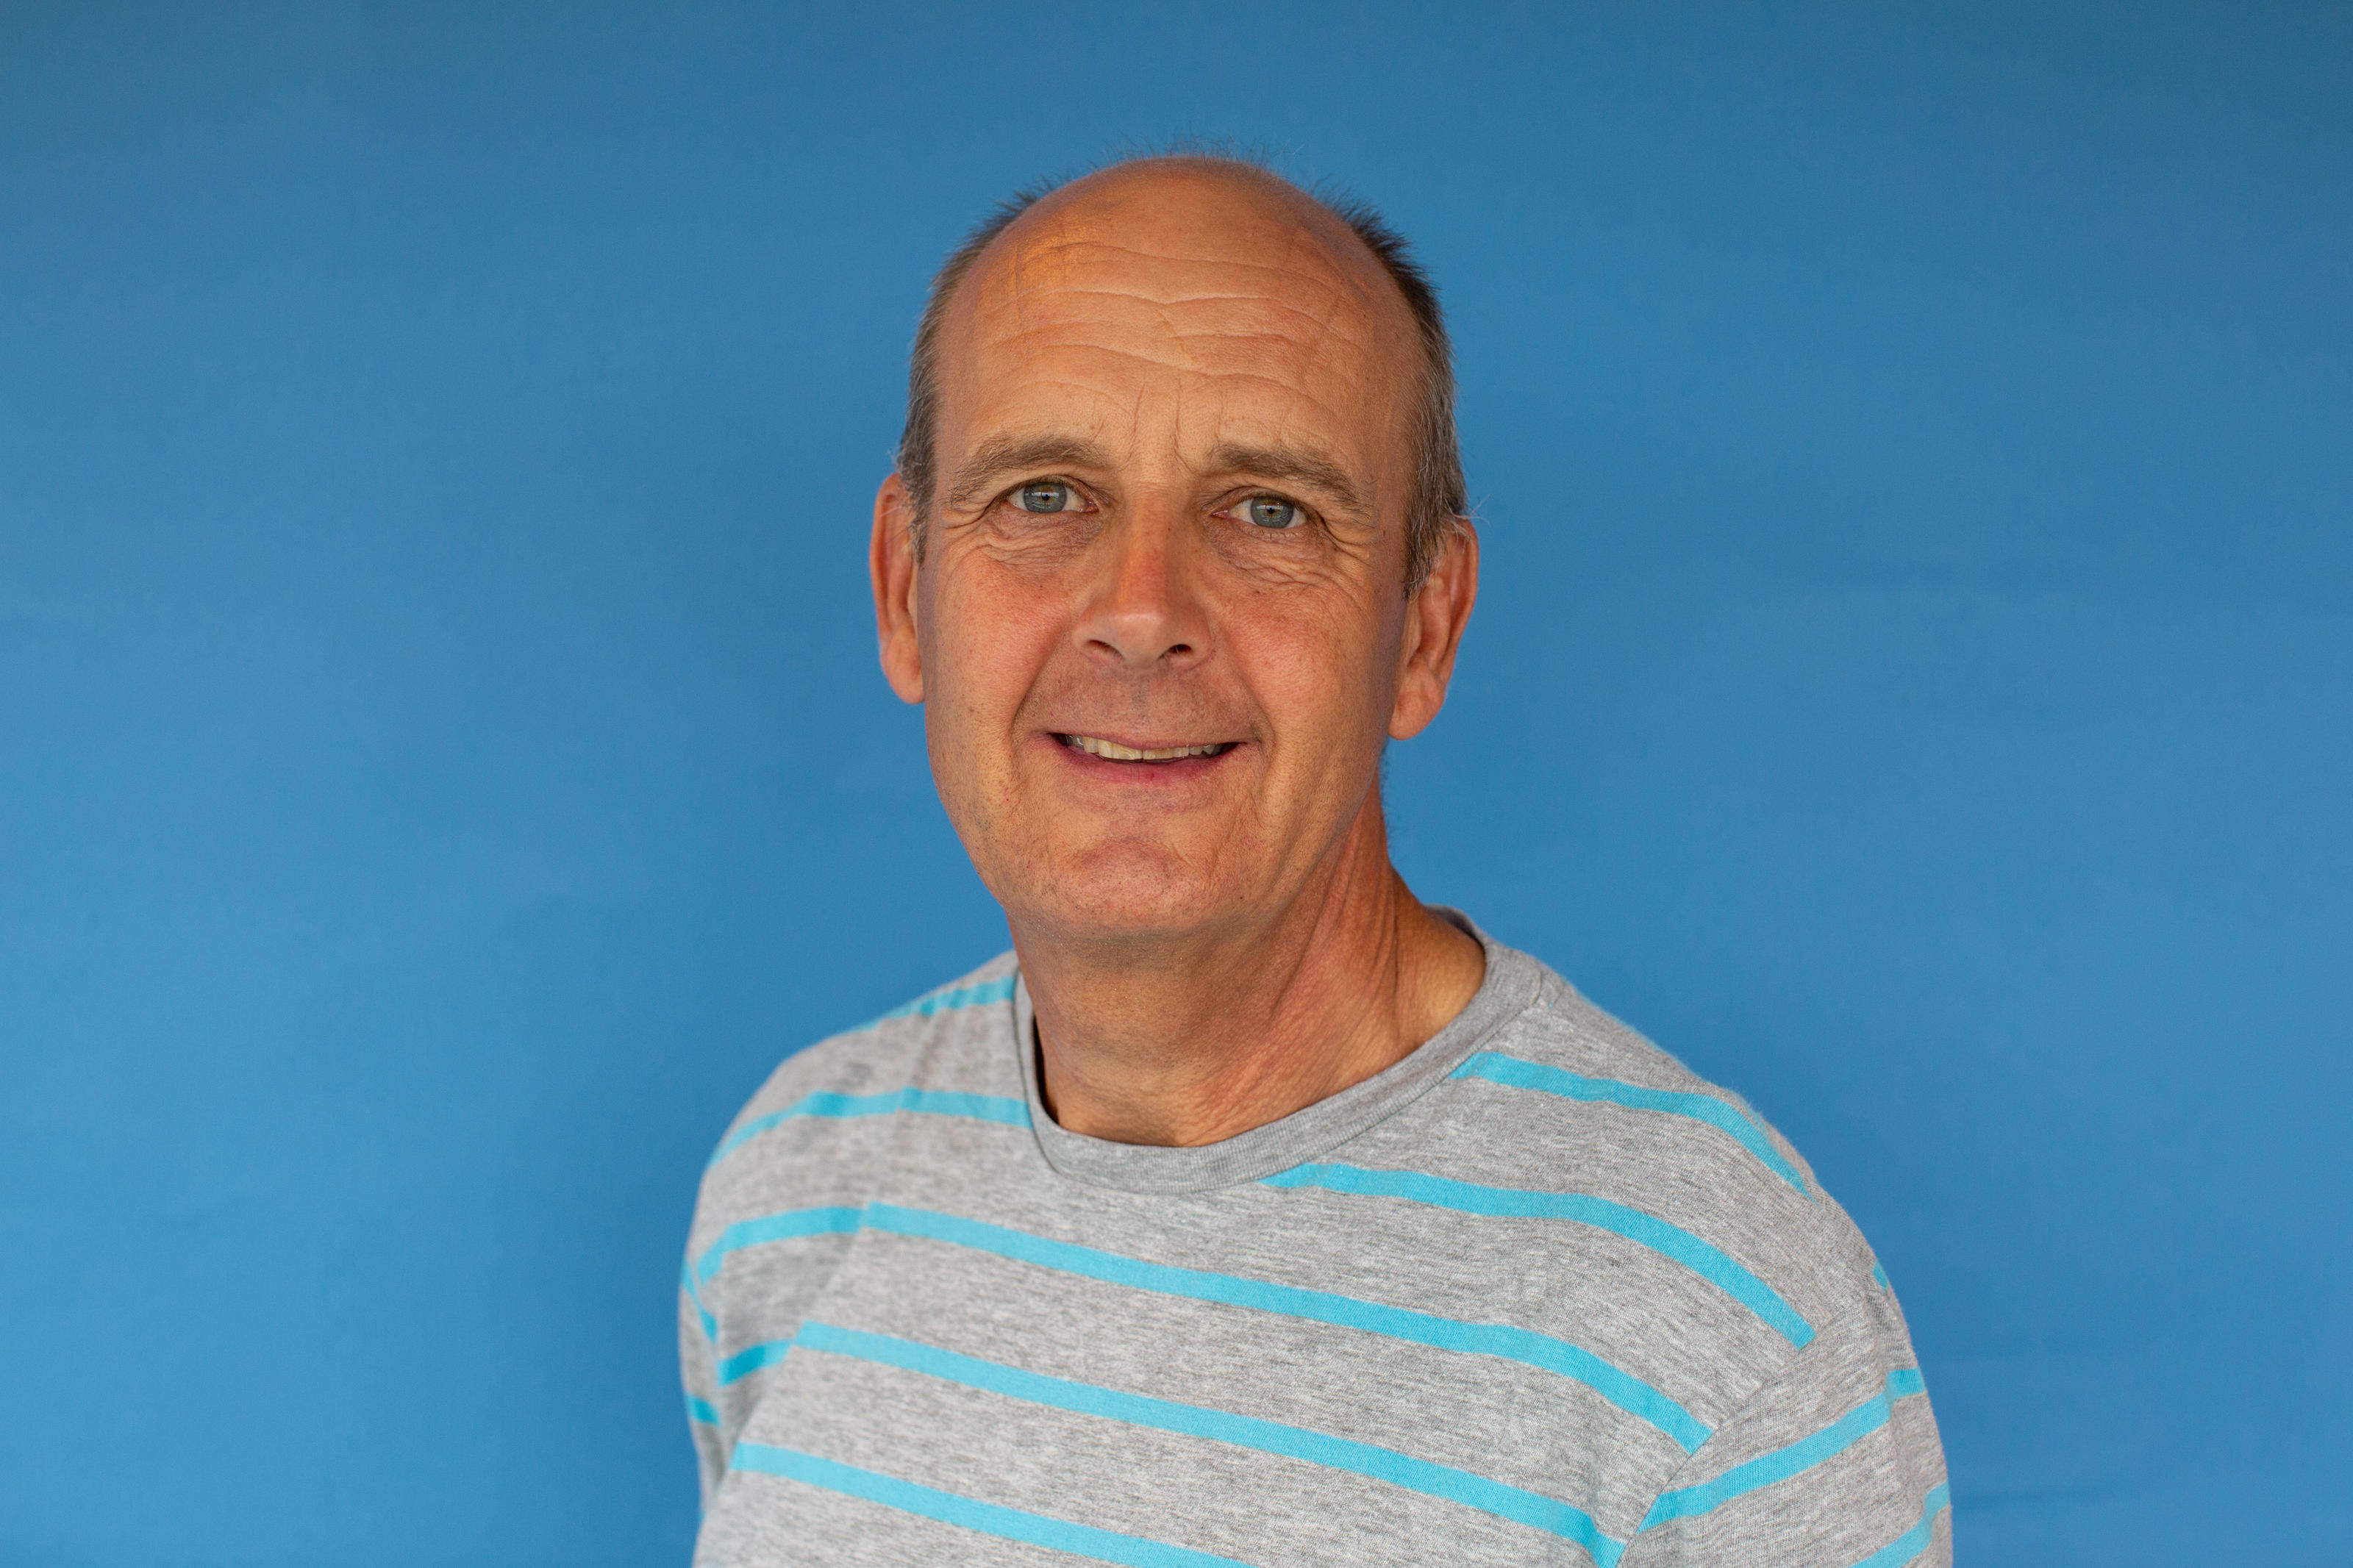 Bob in our events team - contact him if you have questions about the Brighton Matathon